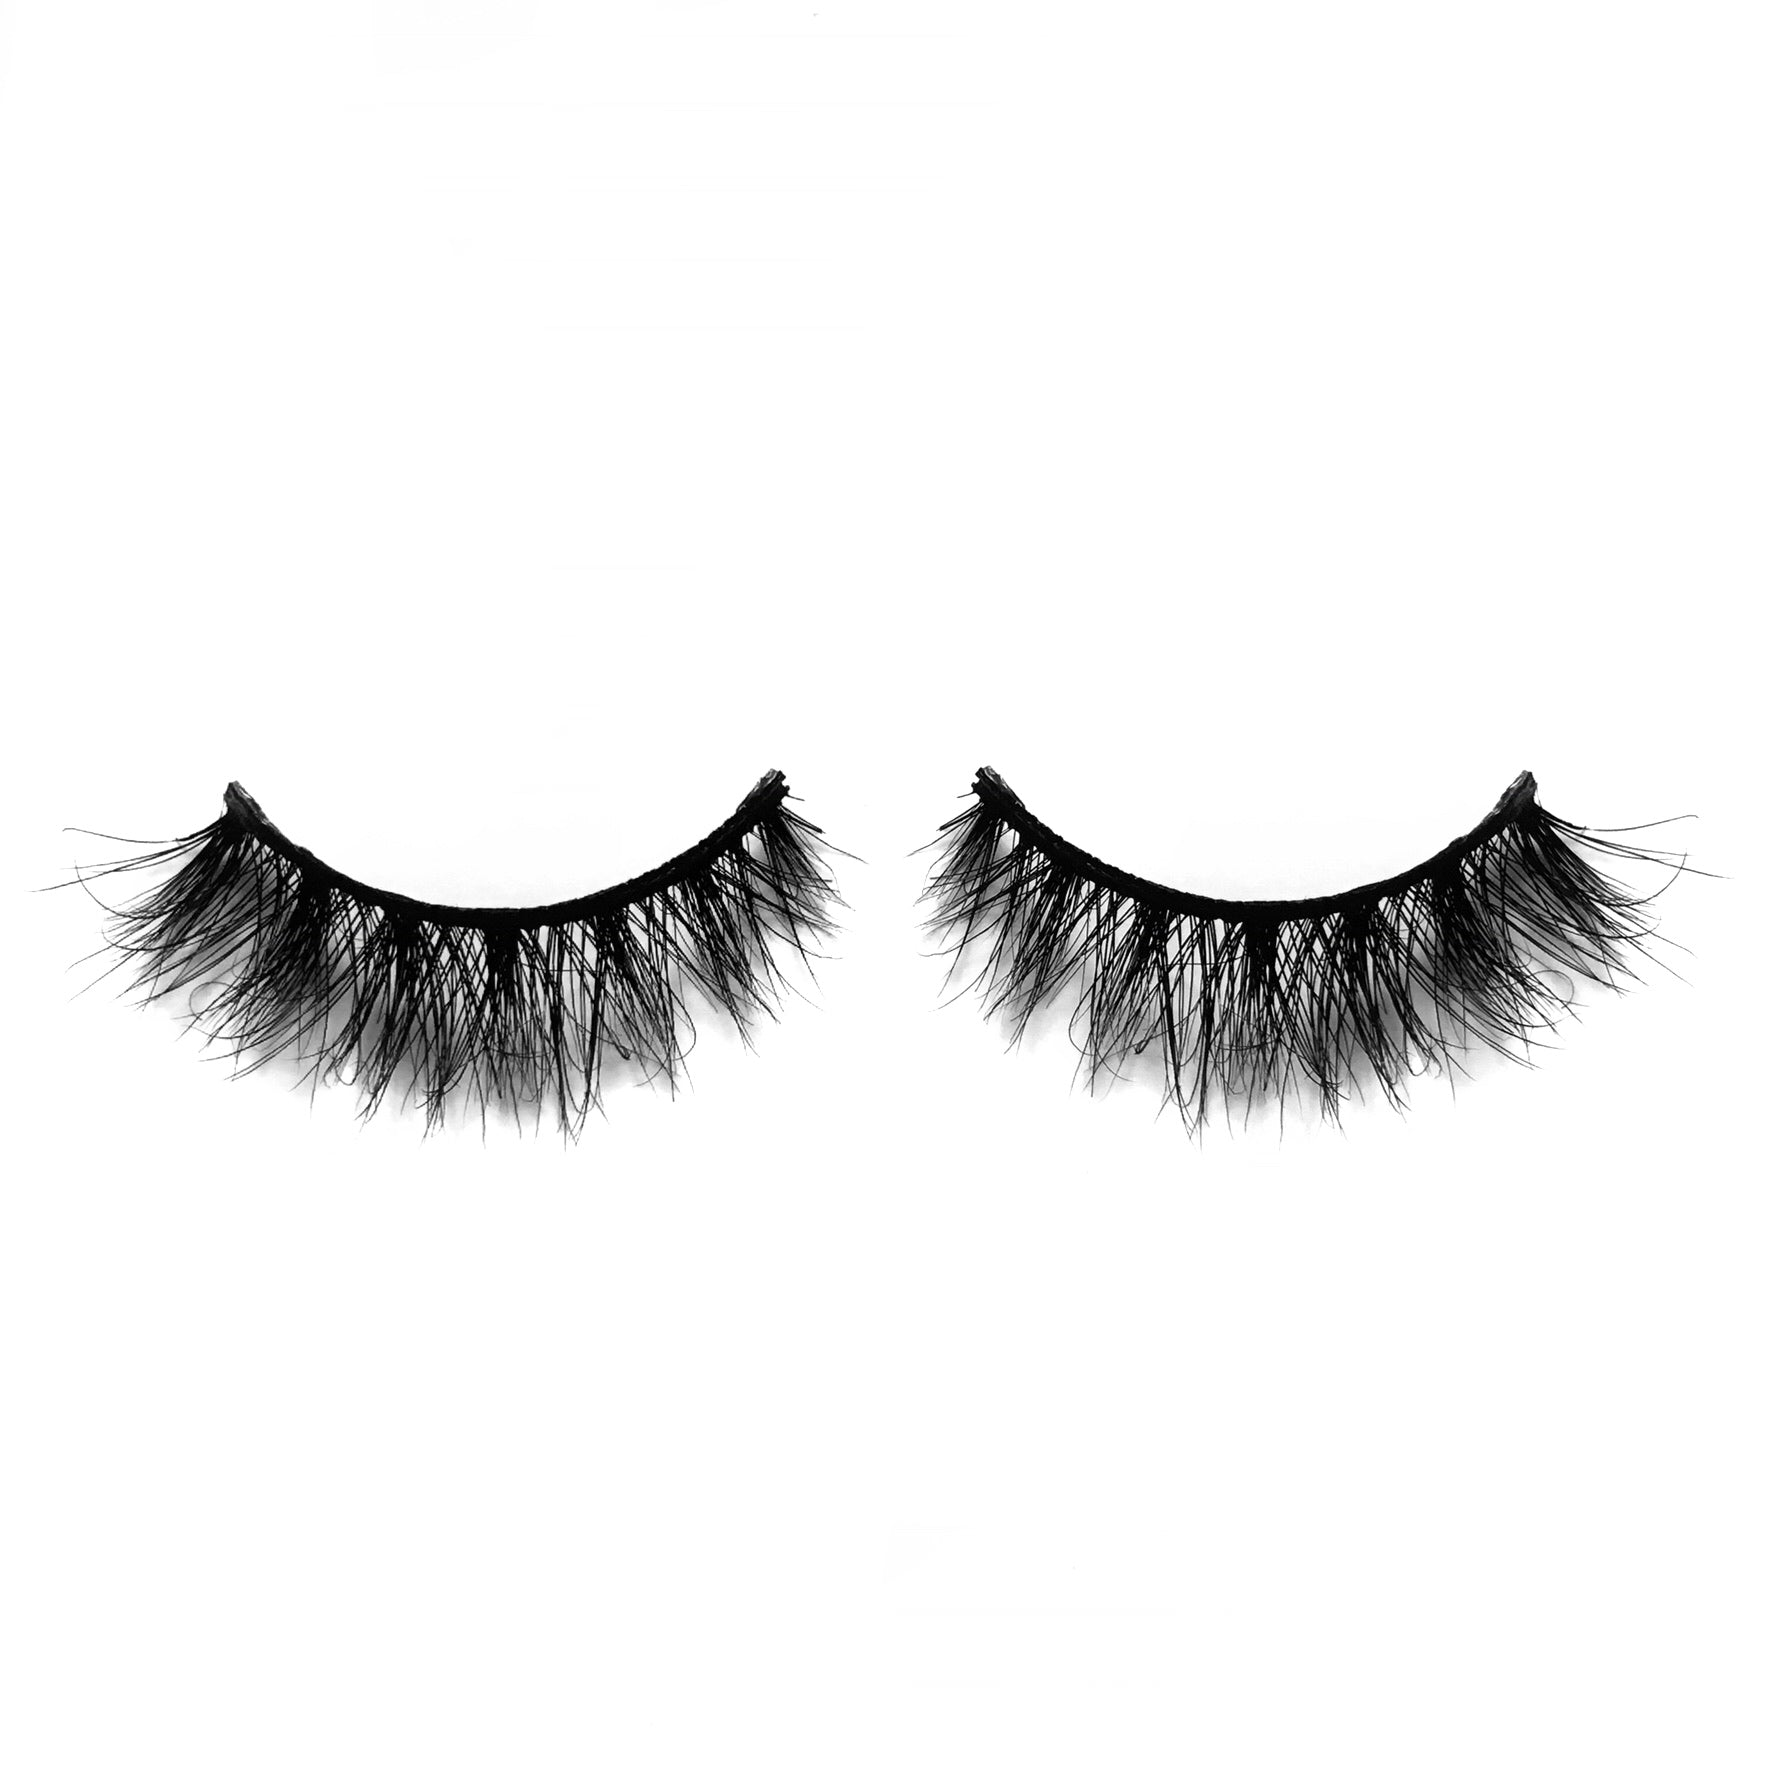 Grand Entrance - My Lash Wish